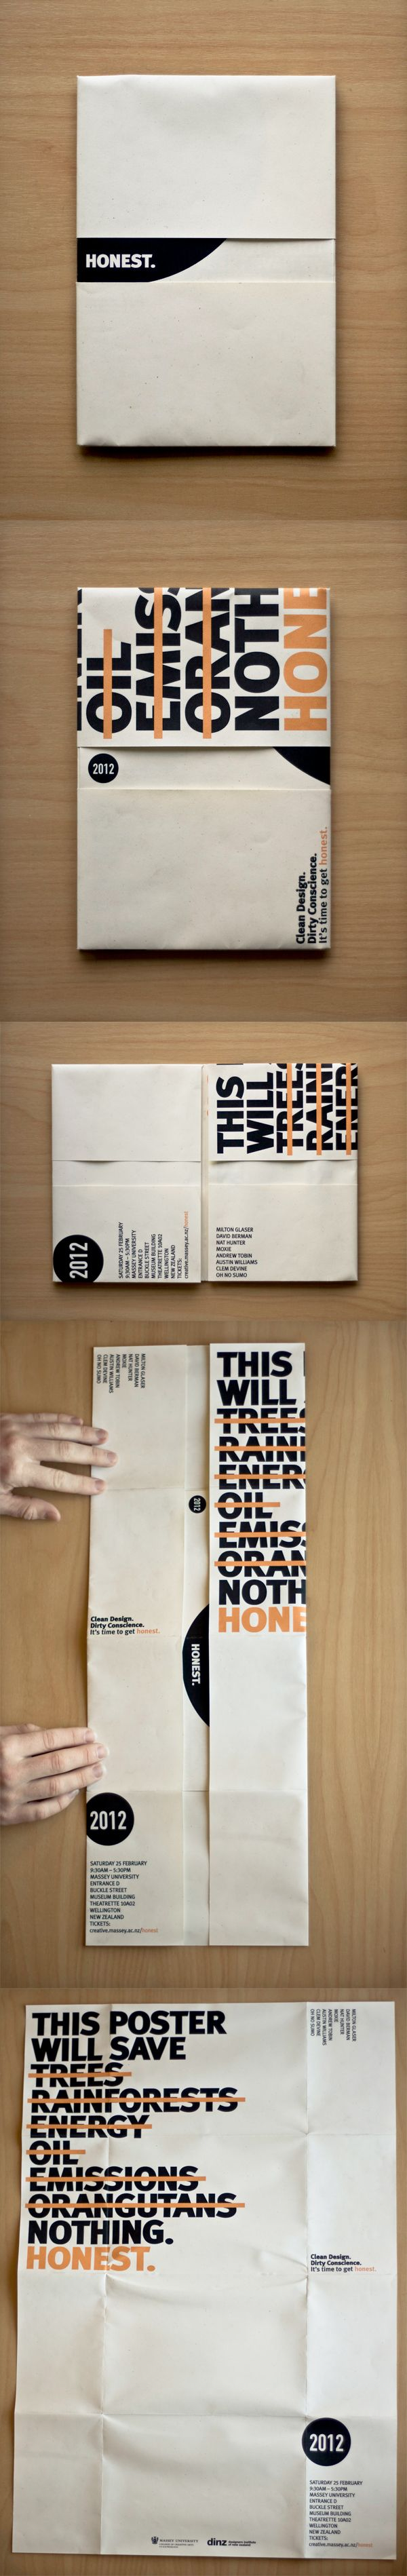 Honest. – Conference Folding A2 dust-jacket poster.  https://www.behance.net/gallery/1816391/Honest-Conference